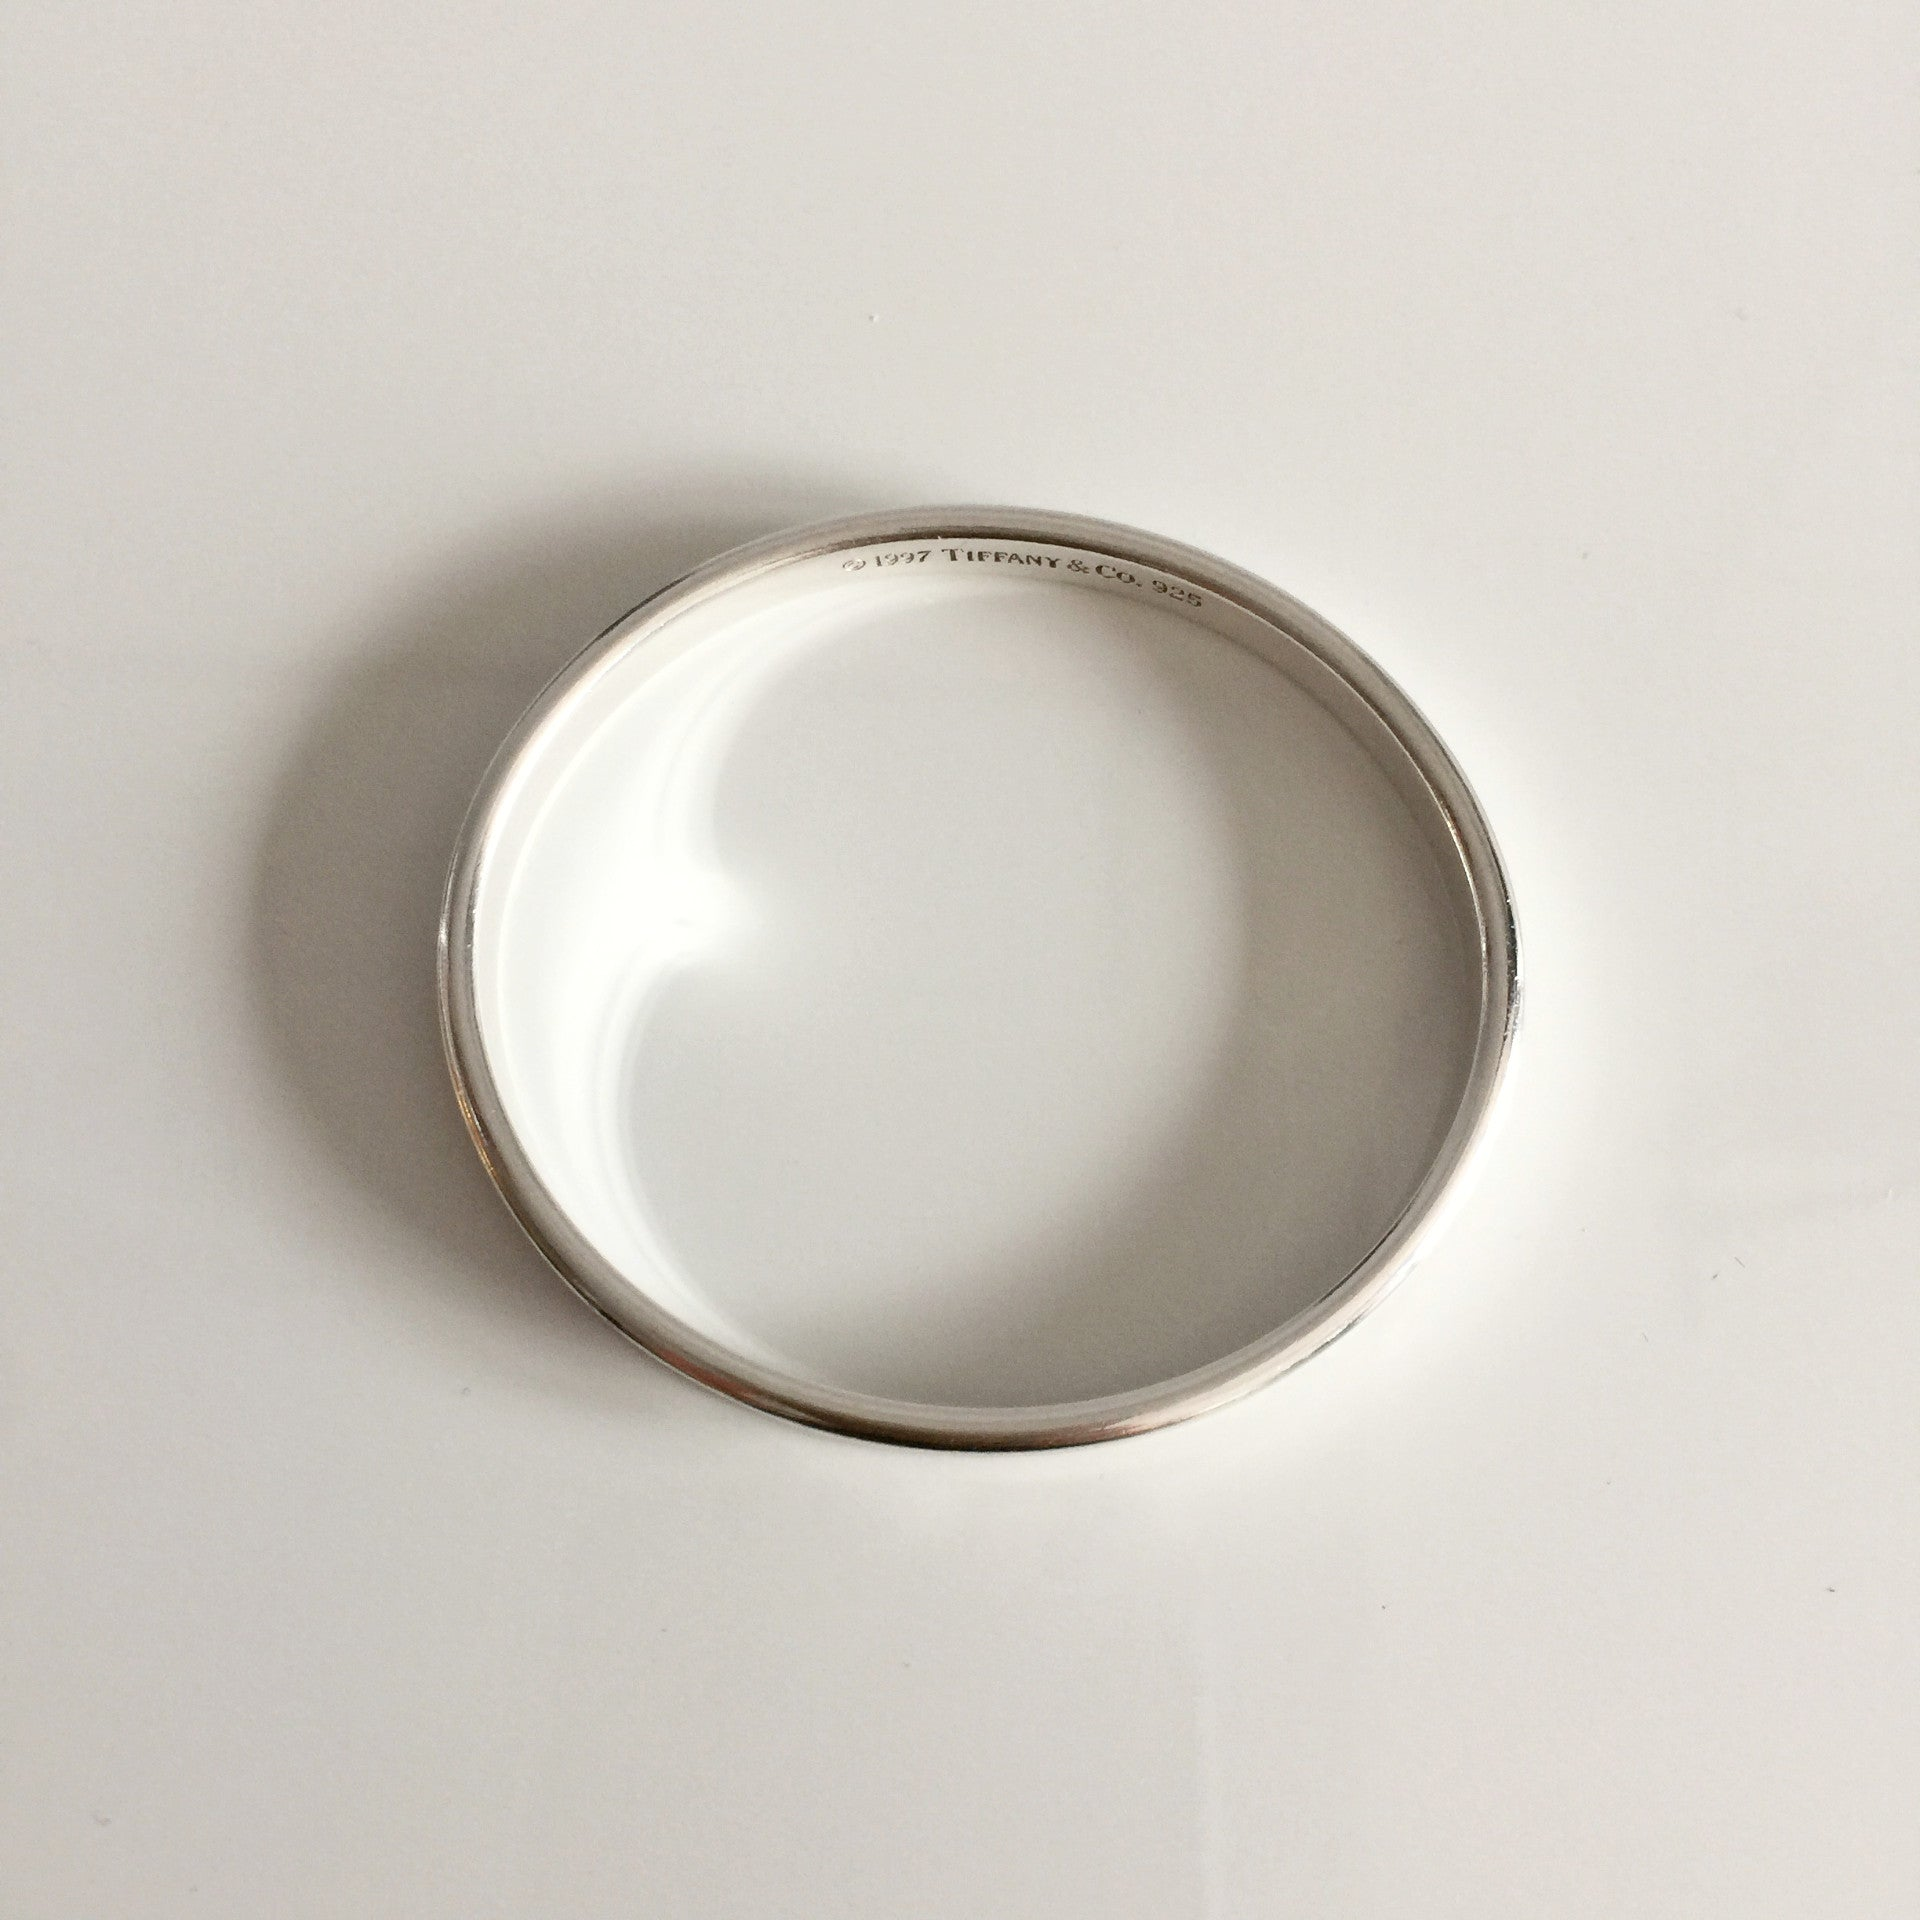 Authentic TIFFANY & CO. Bangle Bracelet